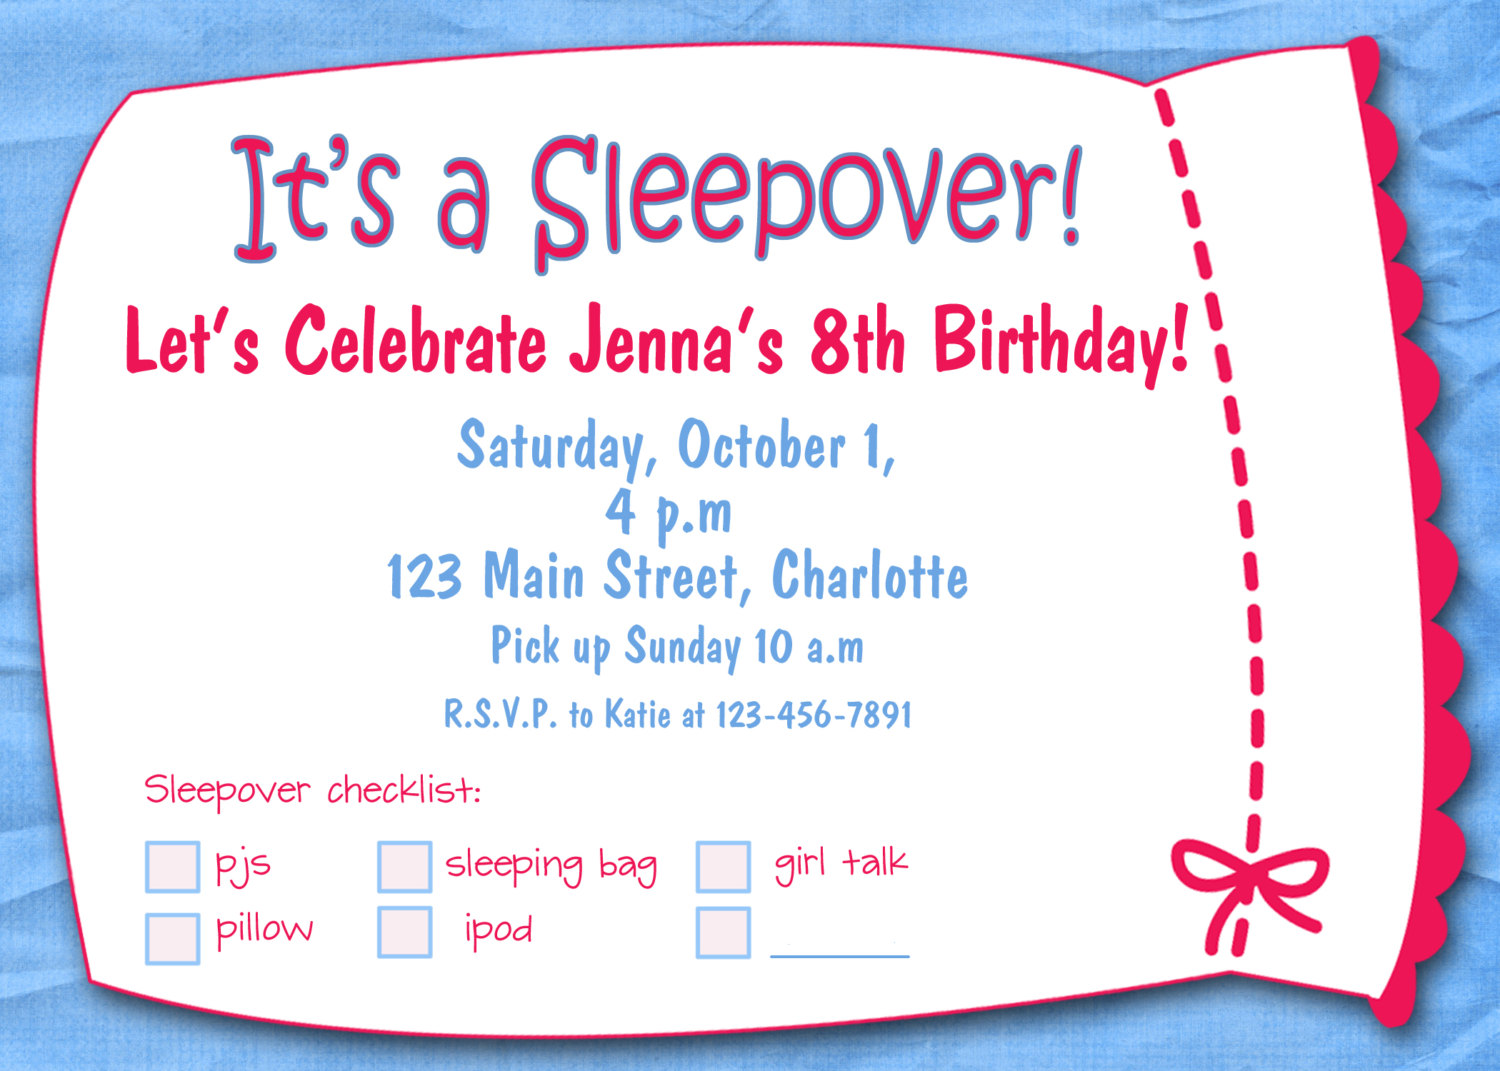 free printable birthday sleepover invitation templates ; 9359dd41774189bc0e54b3a9b38c84dd_1